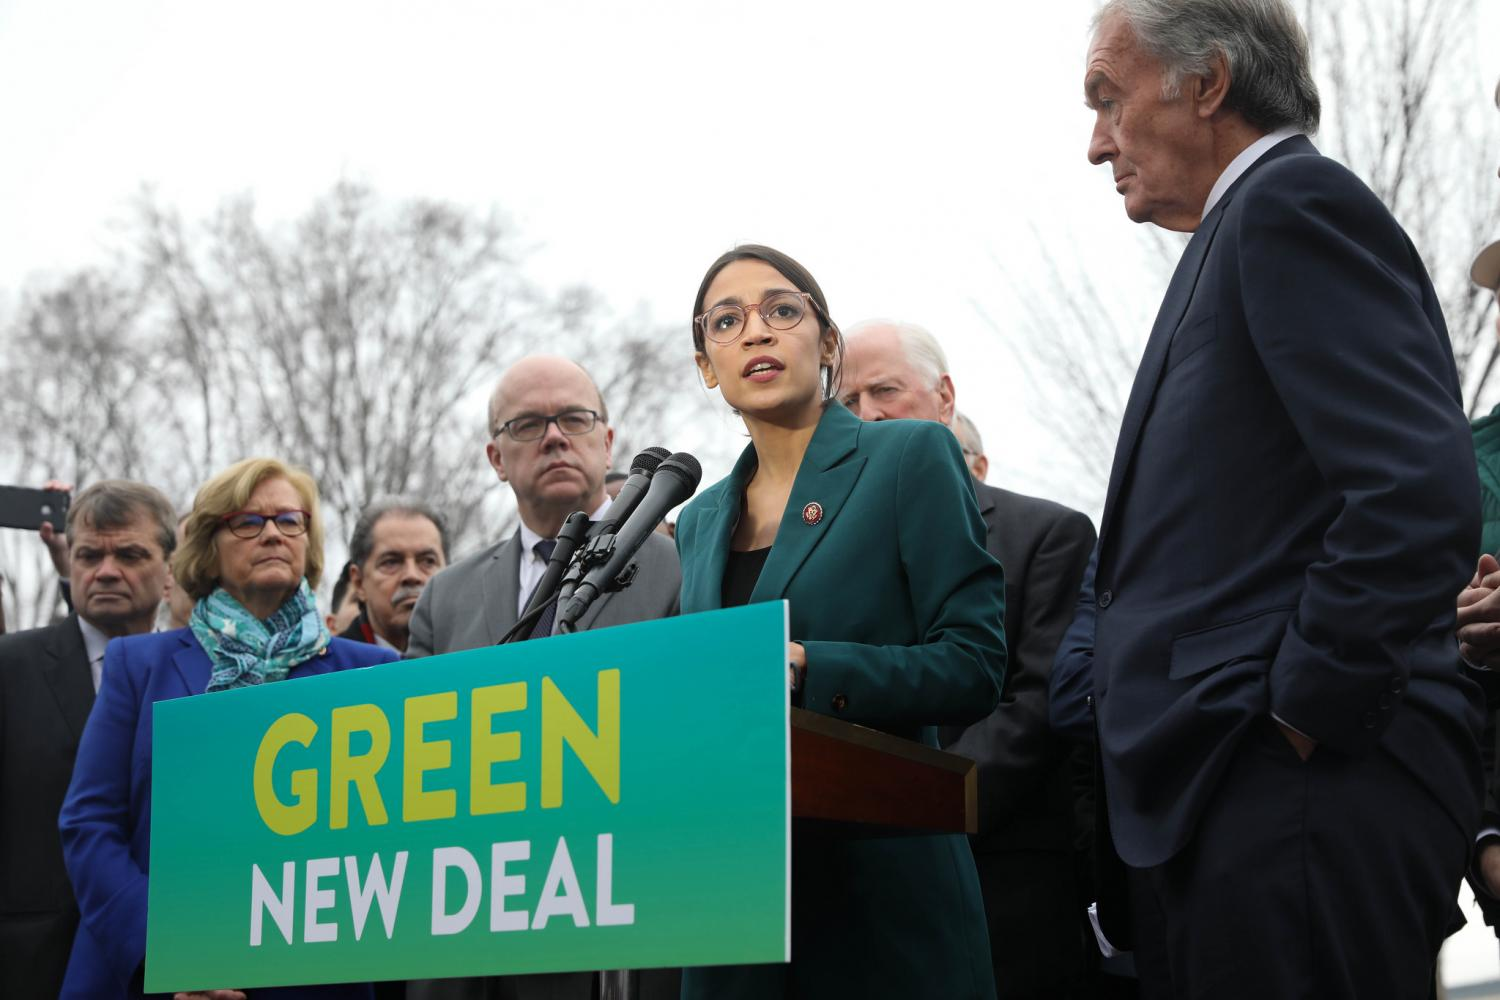 Everyone in the U.S. business community has an opinion about the Green New Deal introduced last week by Representative Alexandria Ocasio-Cortez.